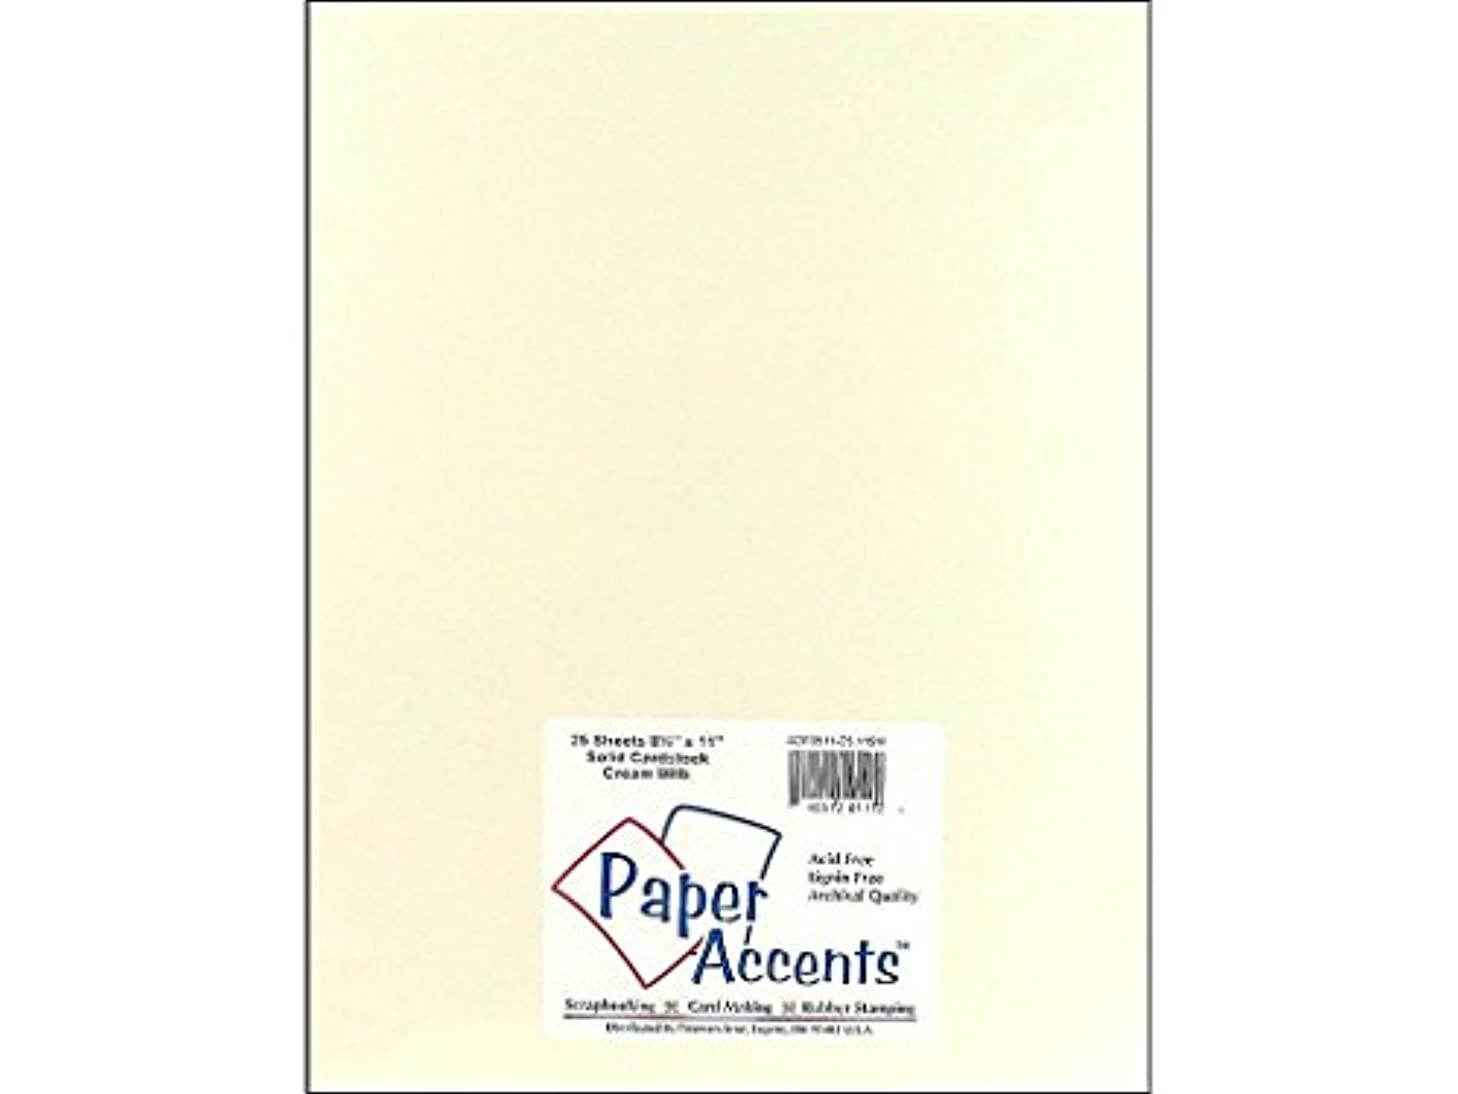 Accent Design Paper Accents 80lb Cdstk Smooth 8.5x11 80# Cream